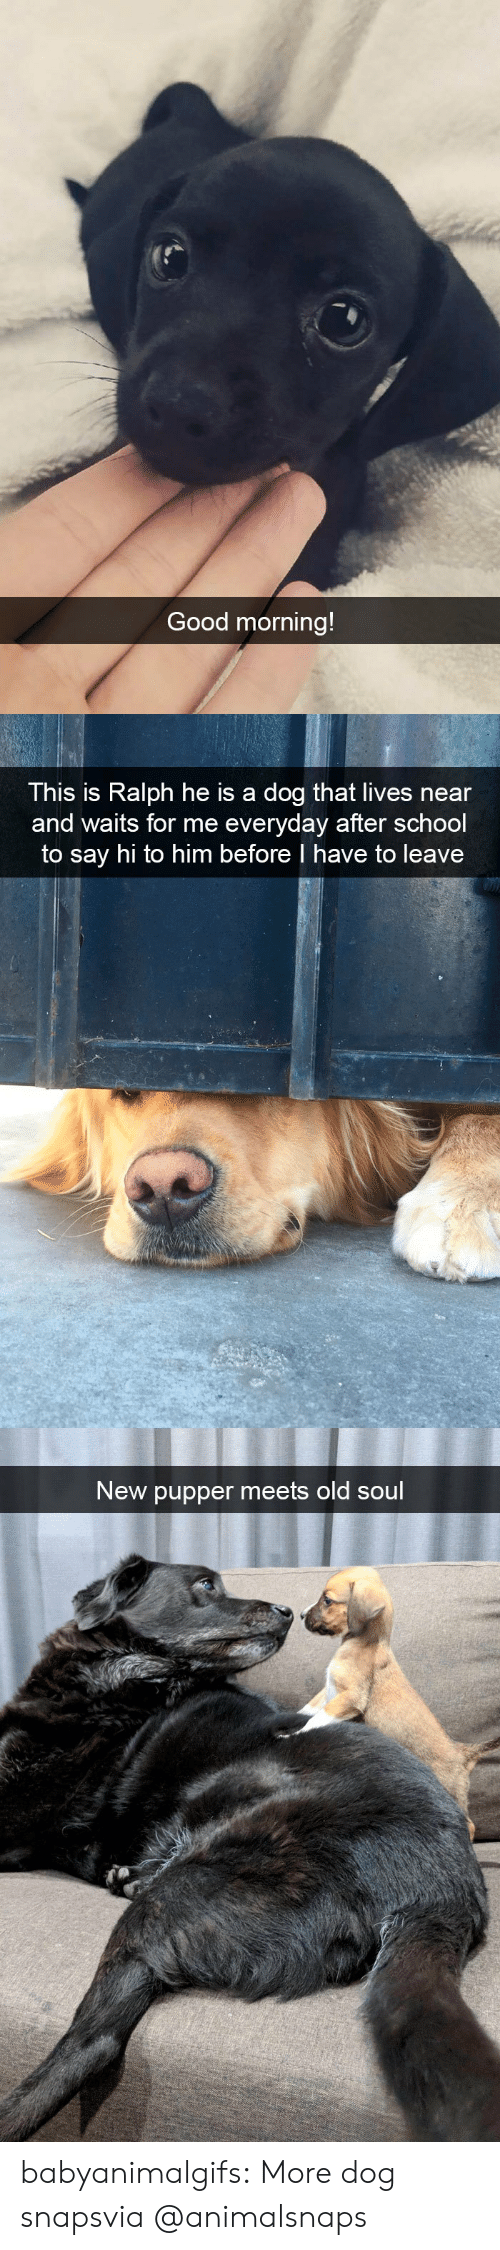 say hi: Good morning!   This is Ralph he is a dog that lives near  and waits for me everyday after school  to say hi to him before I have to leave   New pupper meets old soul babyanimalgifs:  More dog snapsvia @animalsnaps